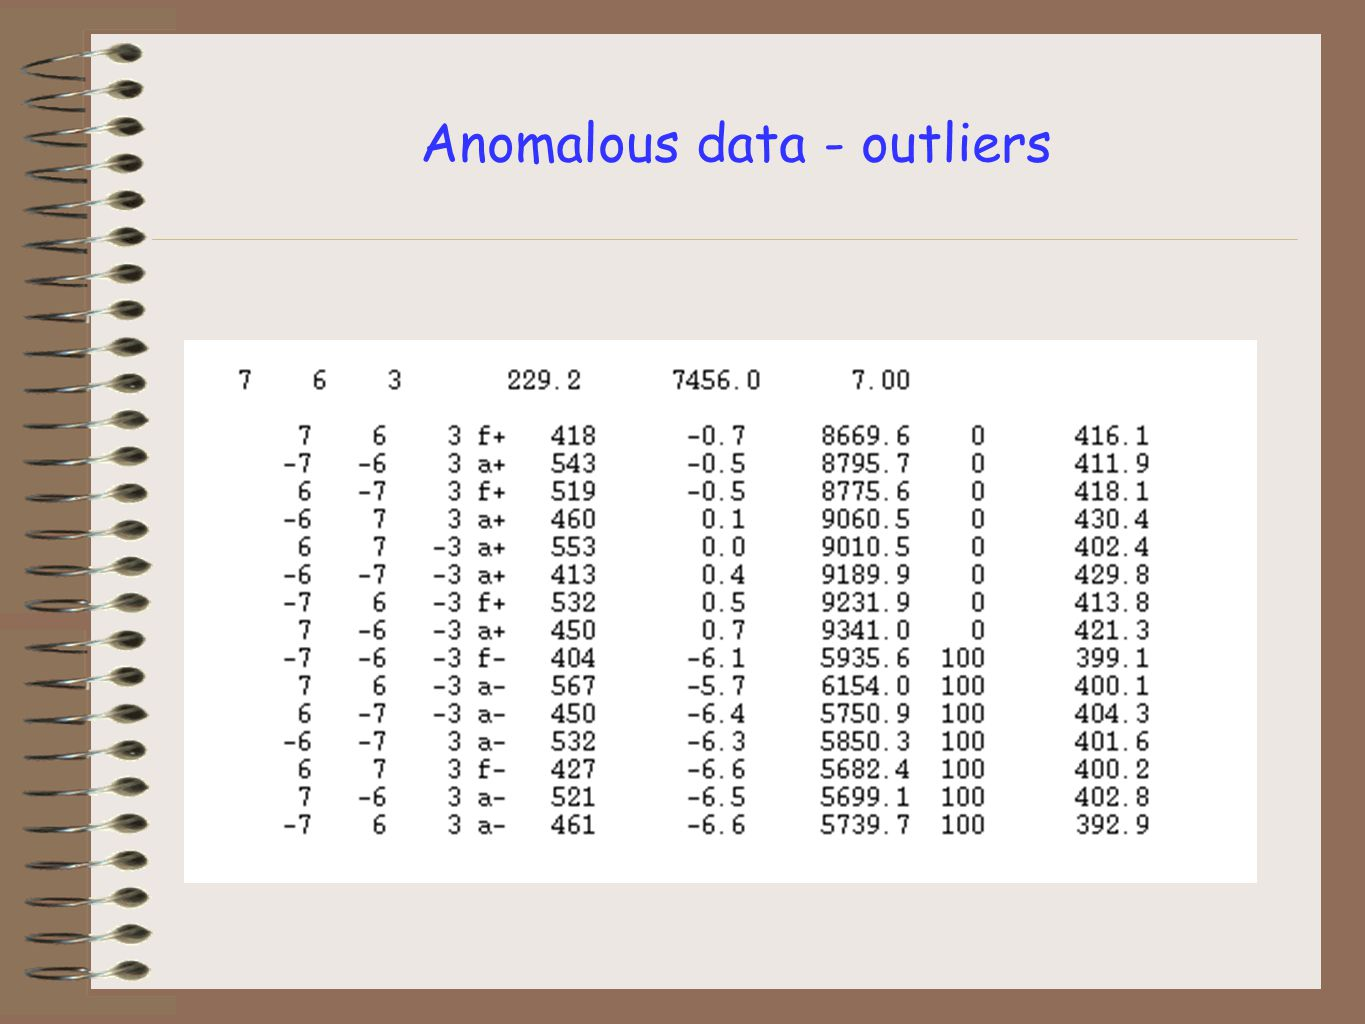 Anomalous data - outliers